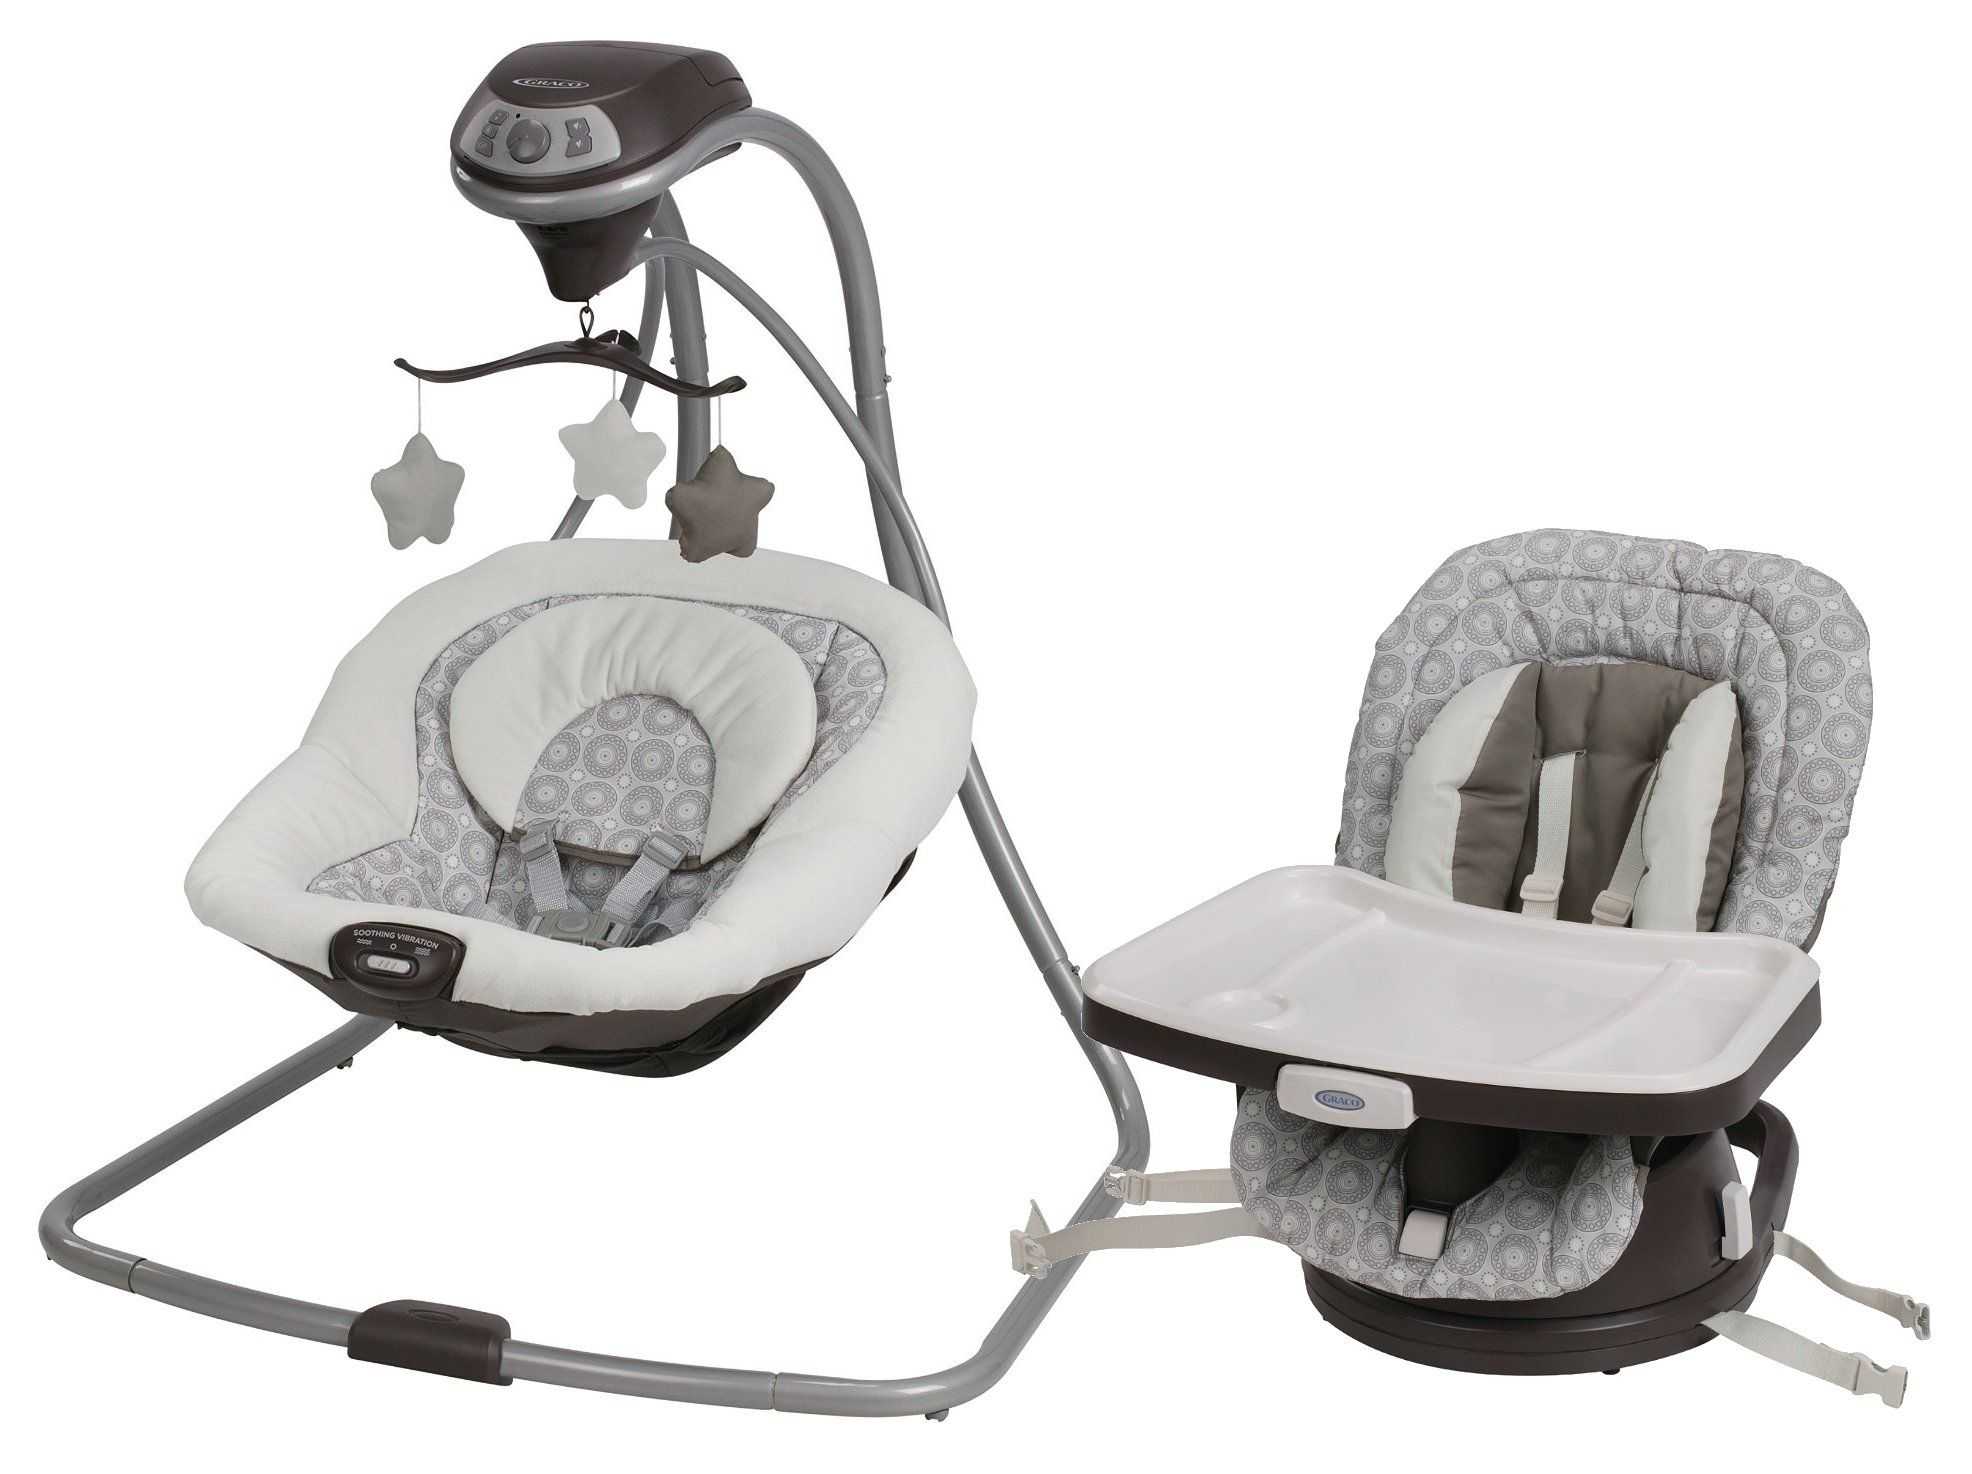 Graco Simple Sway Baby Swing with Swivi Seat 3-in-1 Booster. This ...